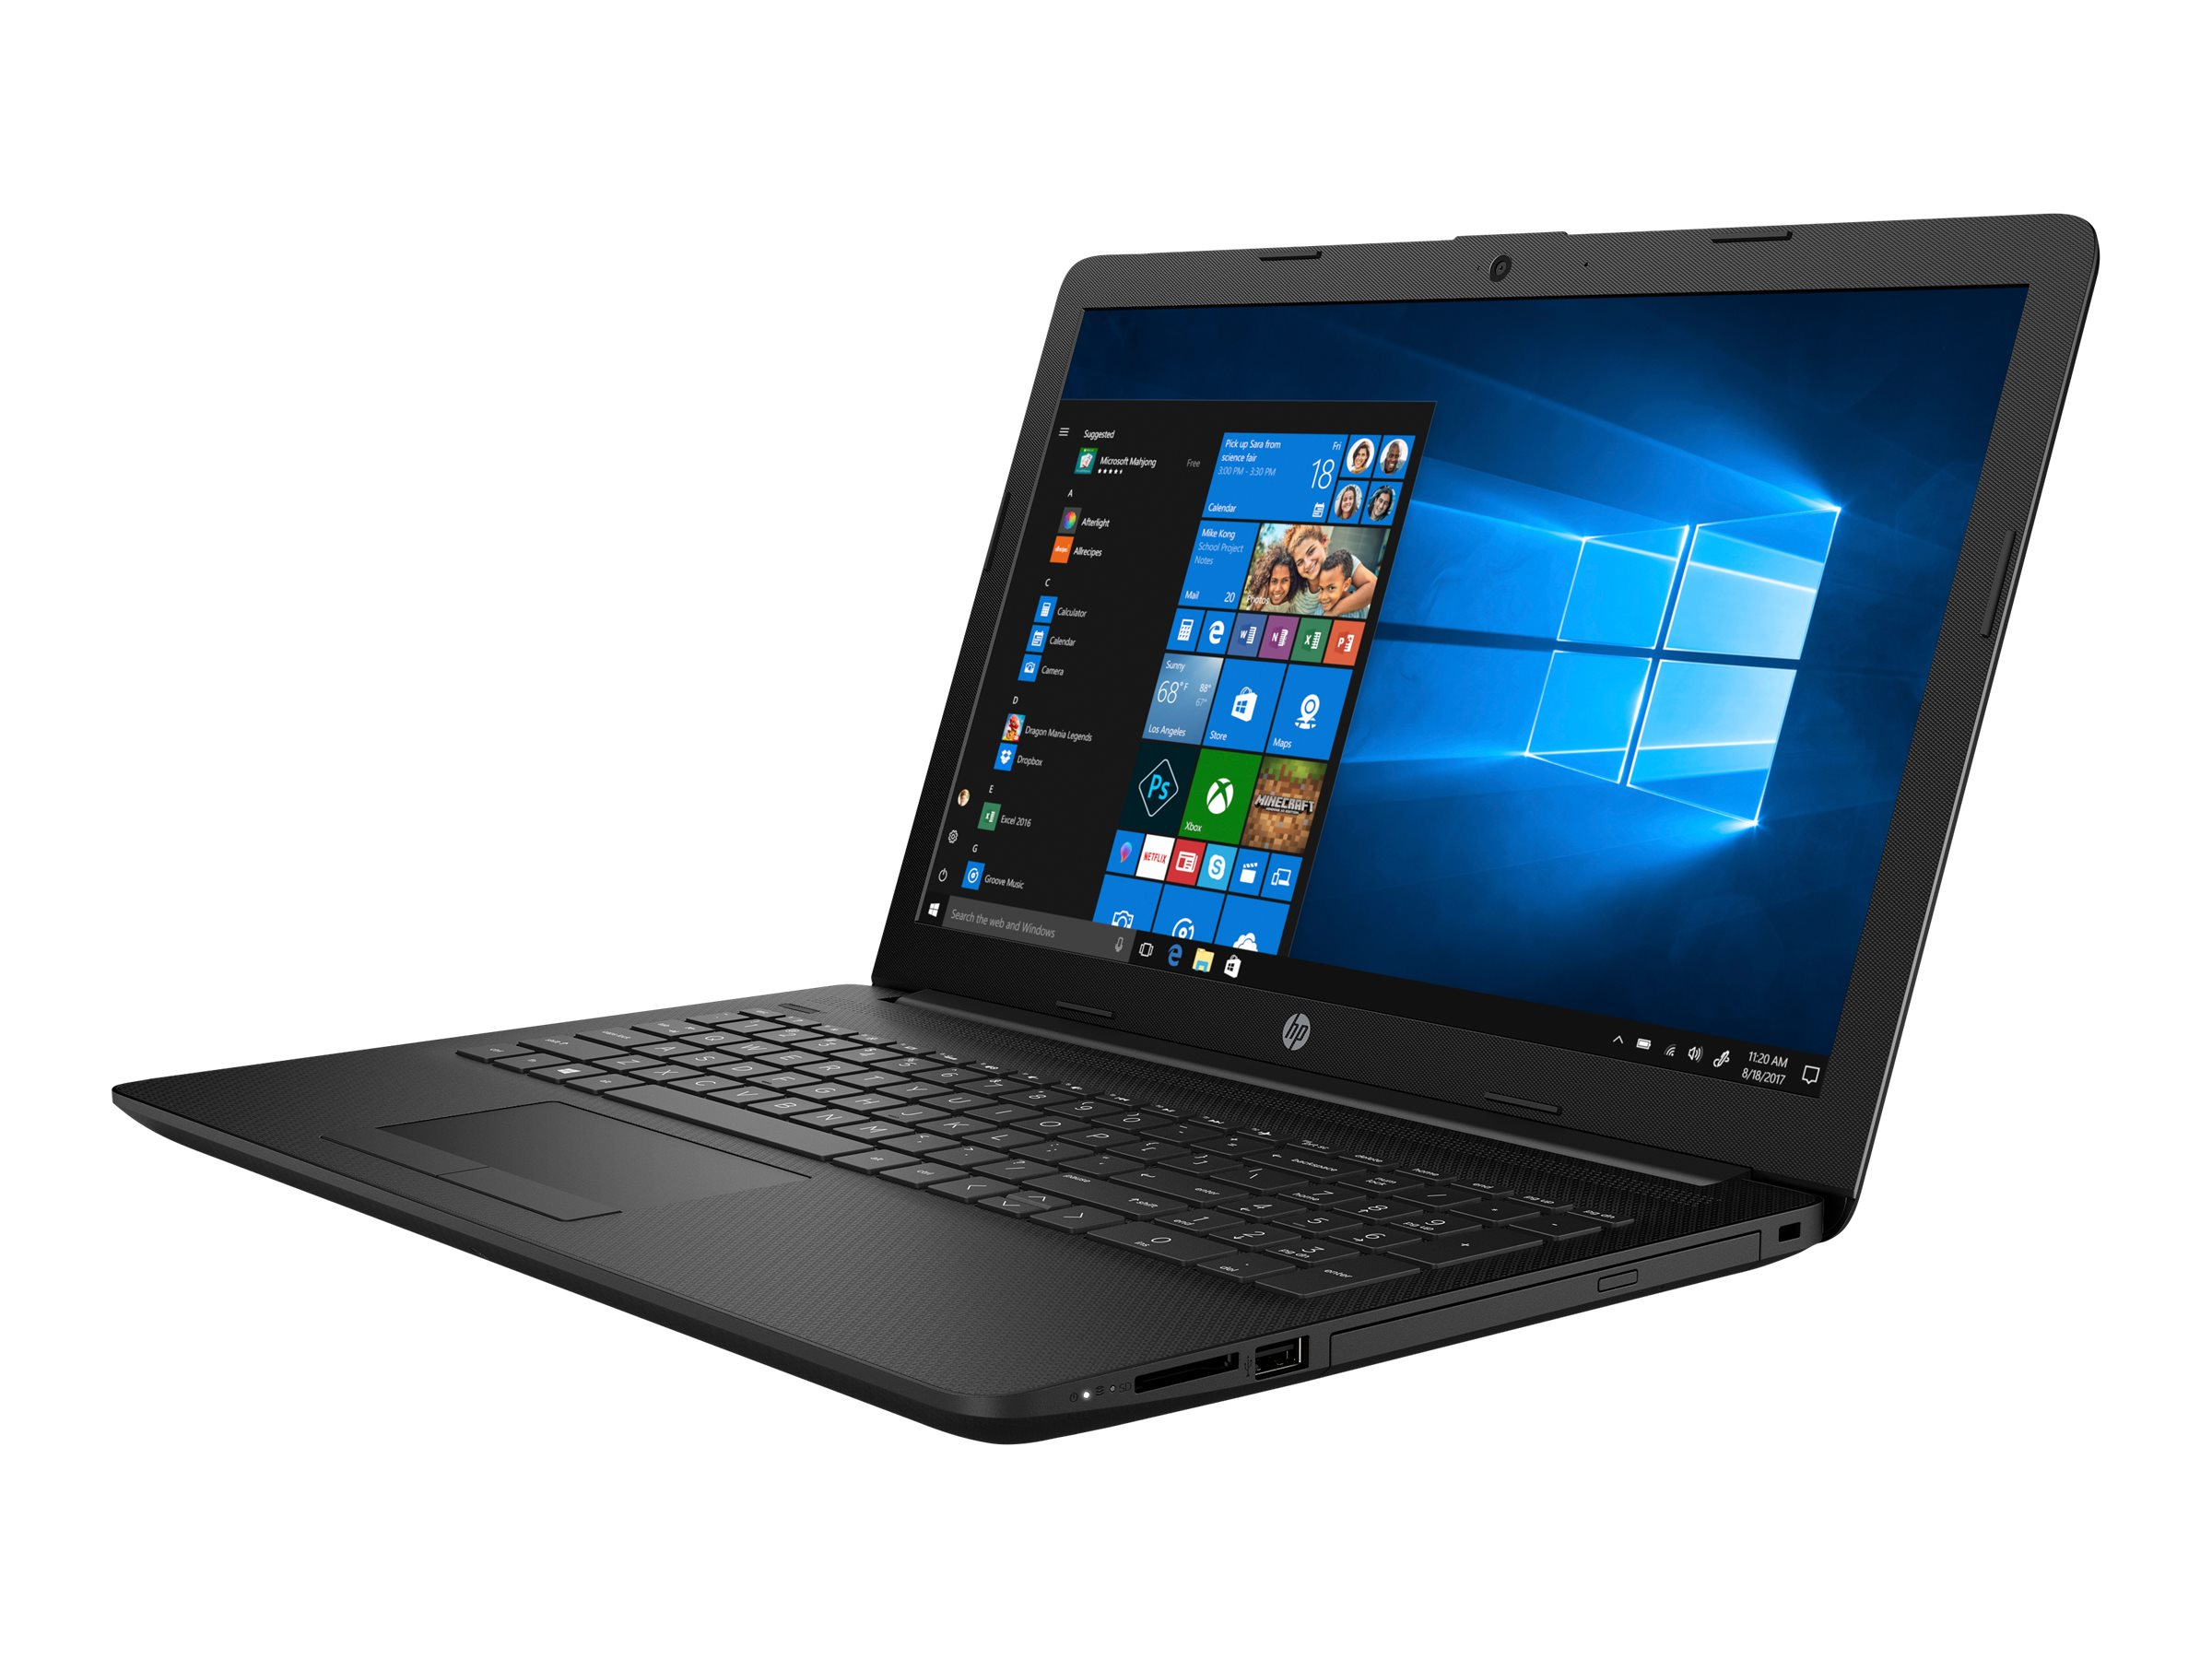 "HP 15-db1227ng - Ryzen 3 3200U / 2.6 GHz - Win 10 Home 64-Bit - 8 GB RAM - 256 GB SSD - DVD-Writer - 39.6 cm (15.6"")"